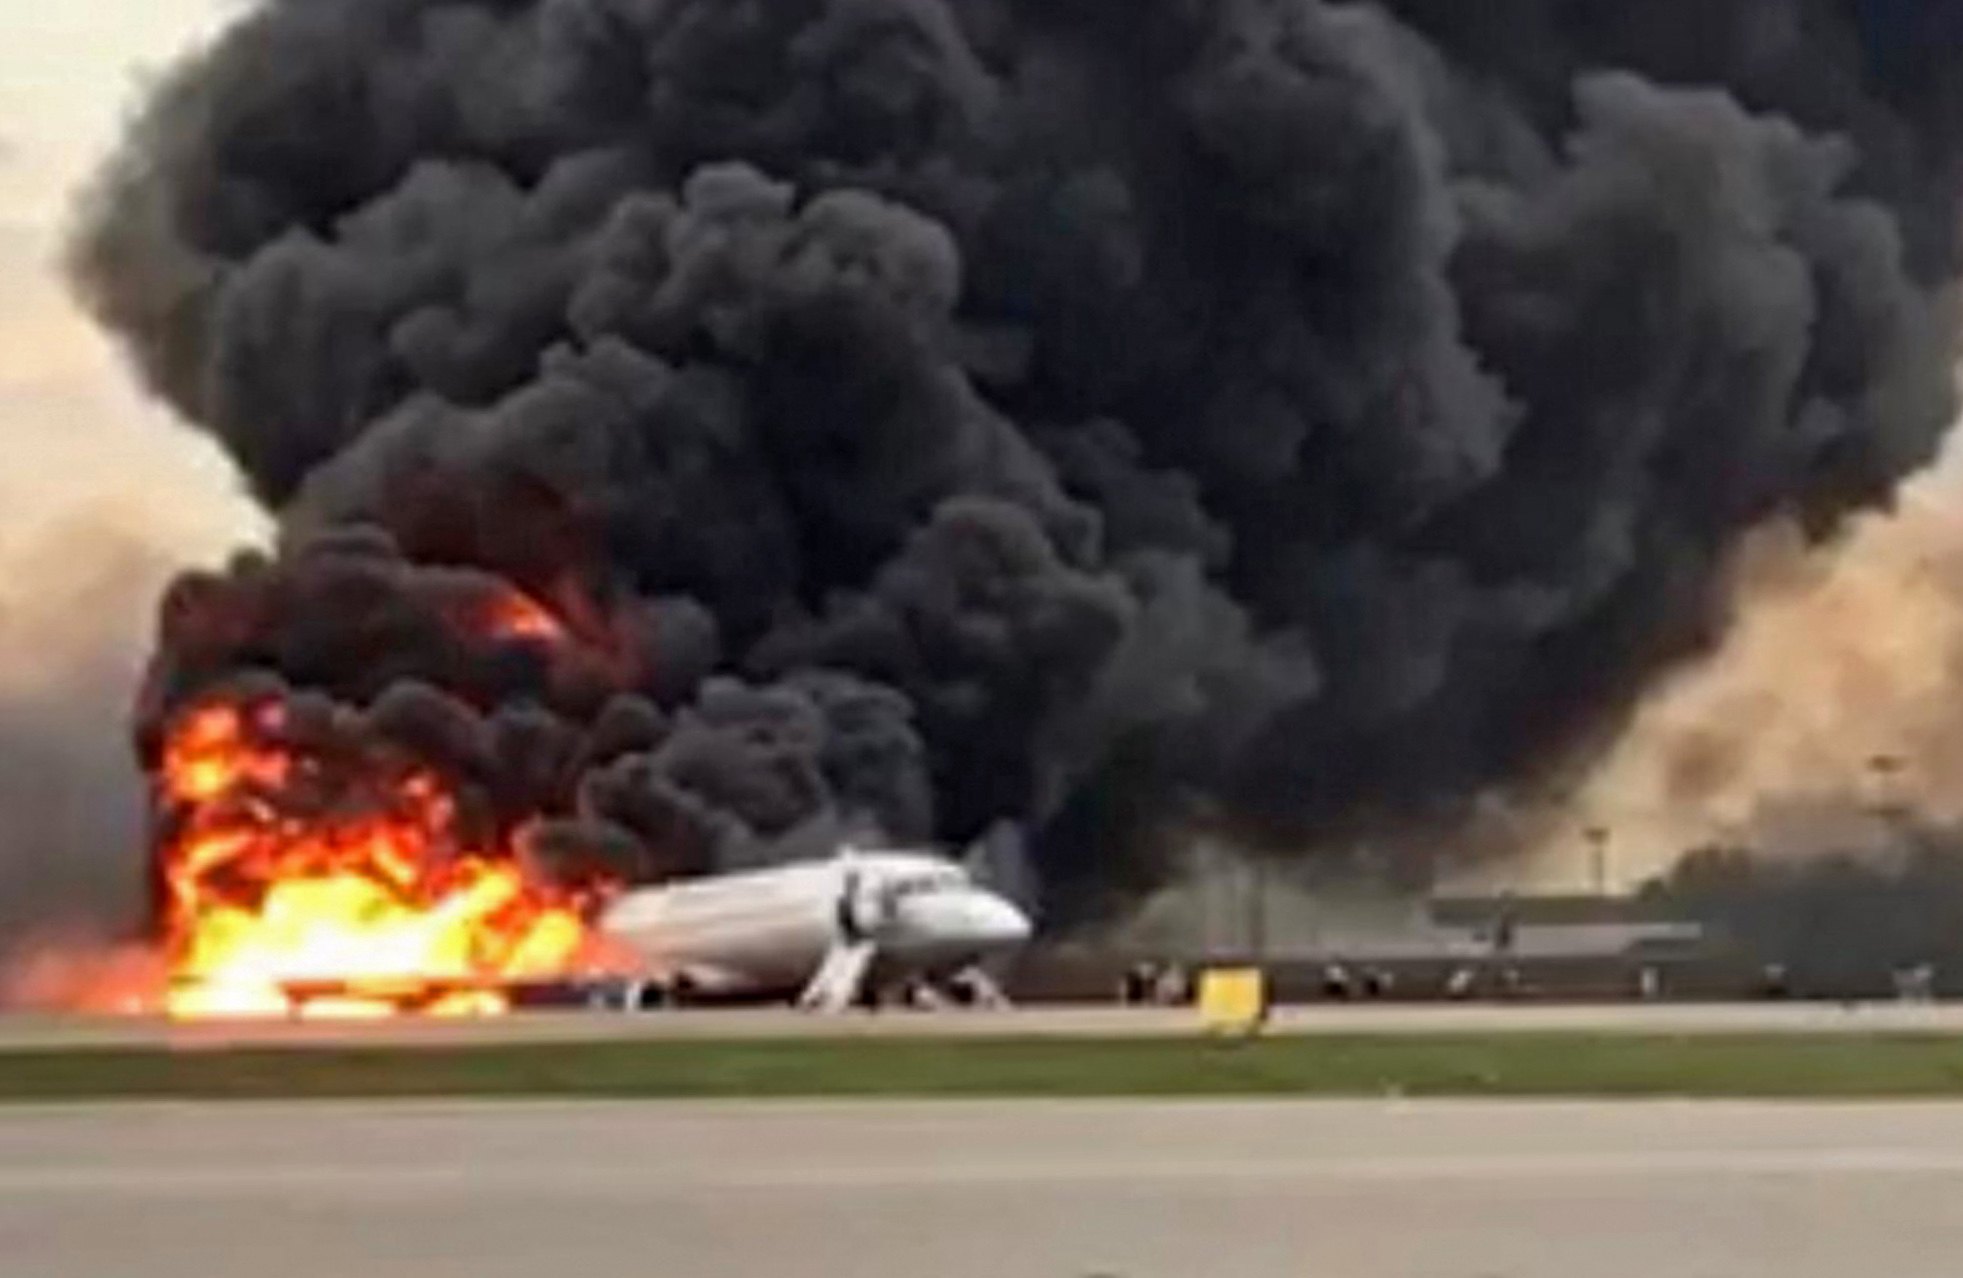 Sukhoi Superjet 100 of Russian airline Aeroflot burning at Moscow's Sheremetyevo airport